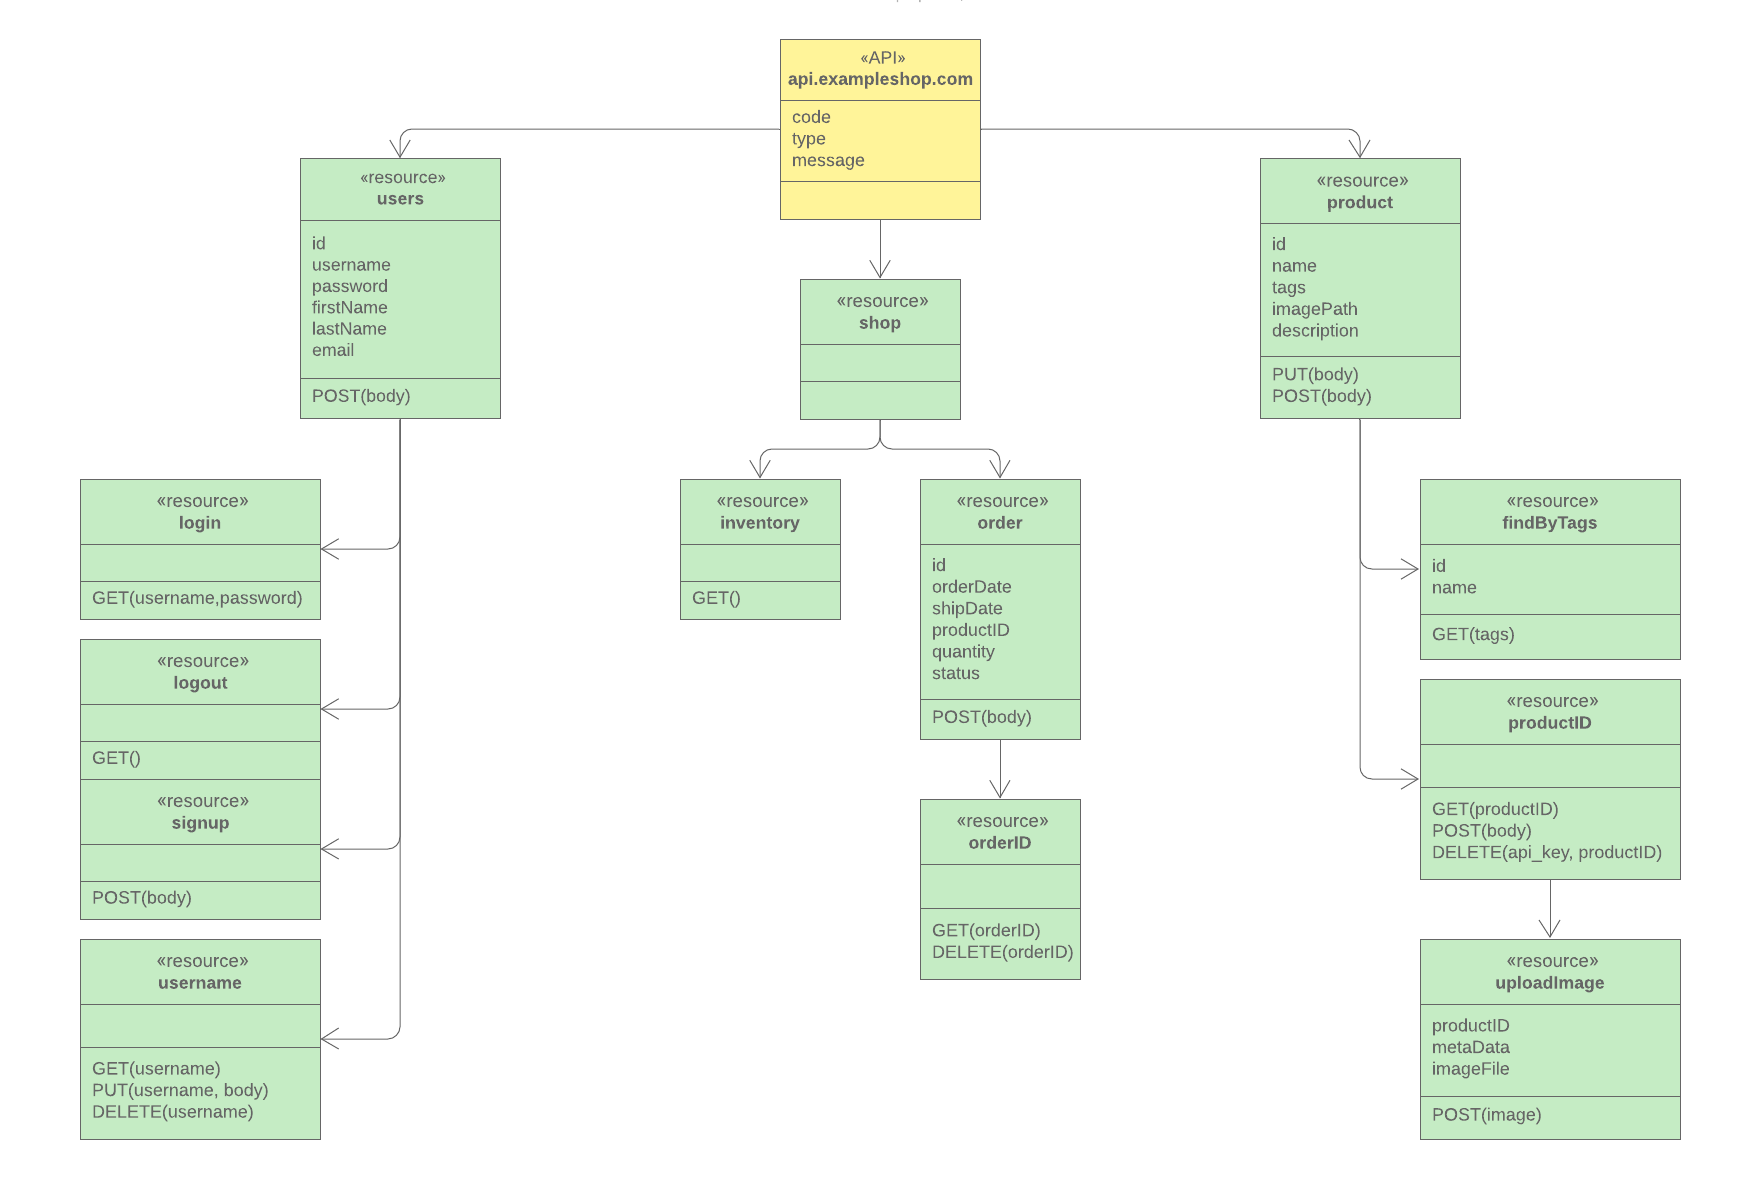 UML API diagram